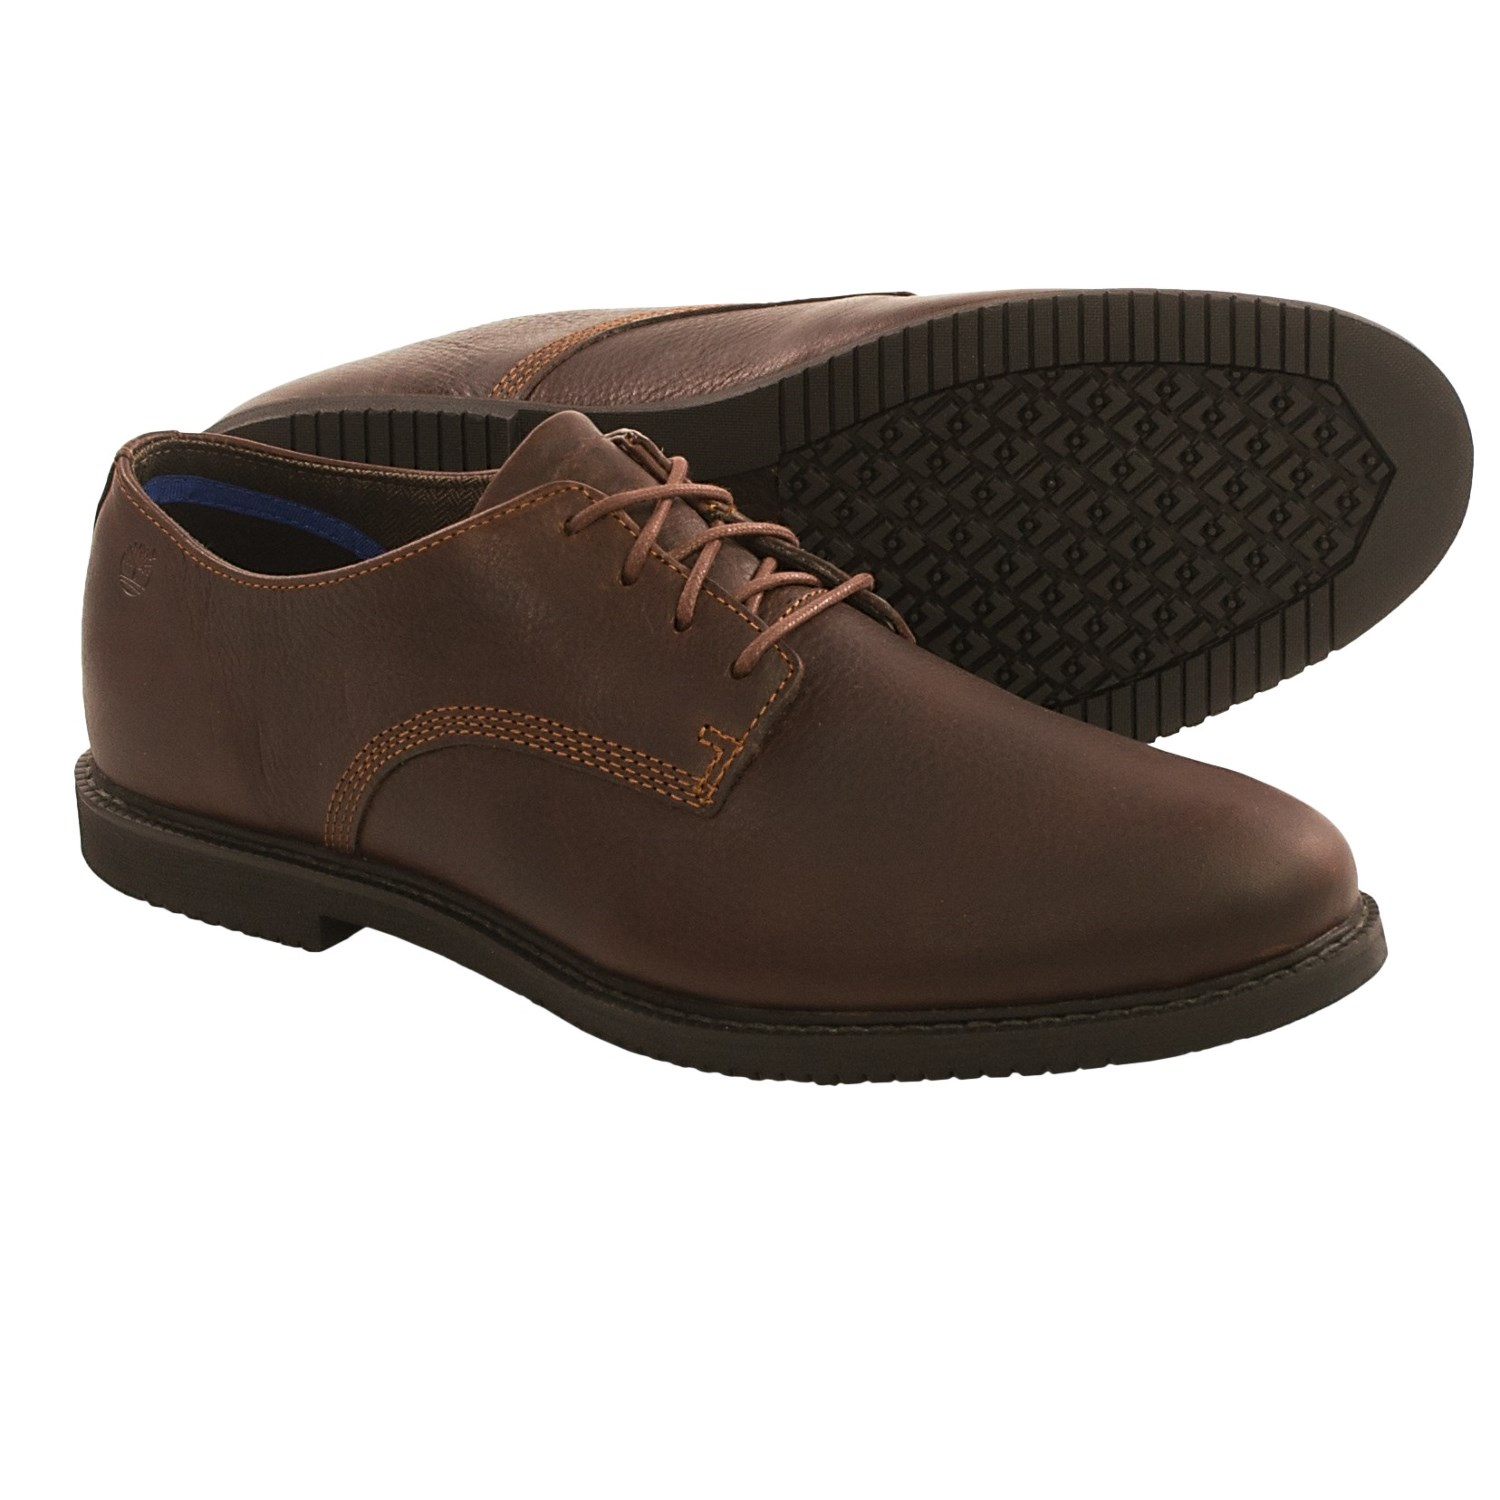 Timberland Shoes Size